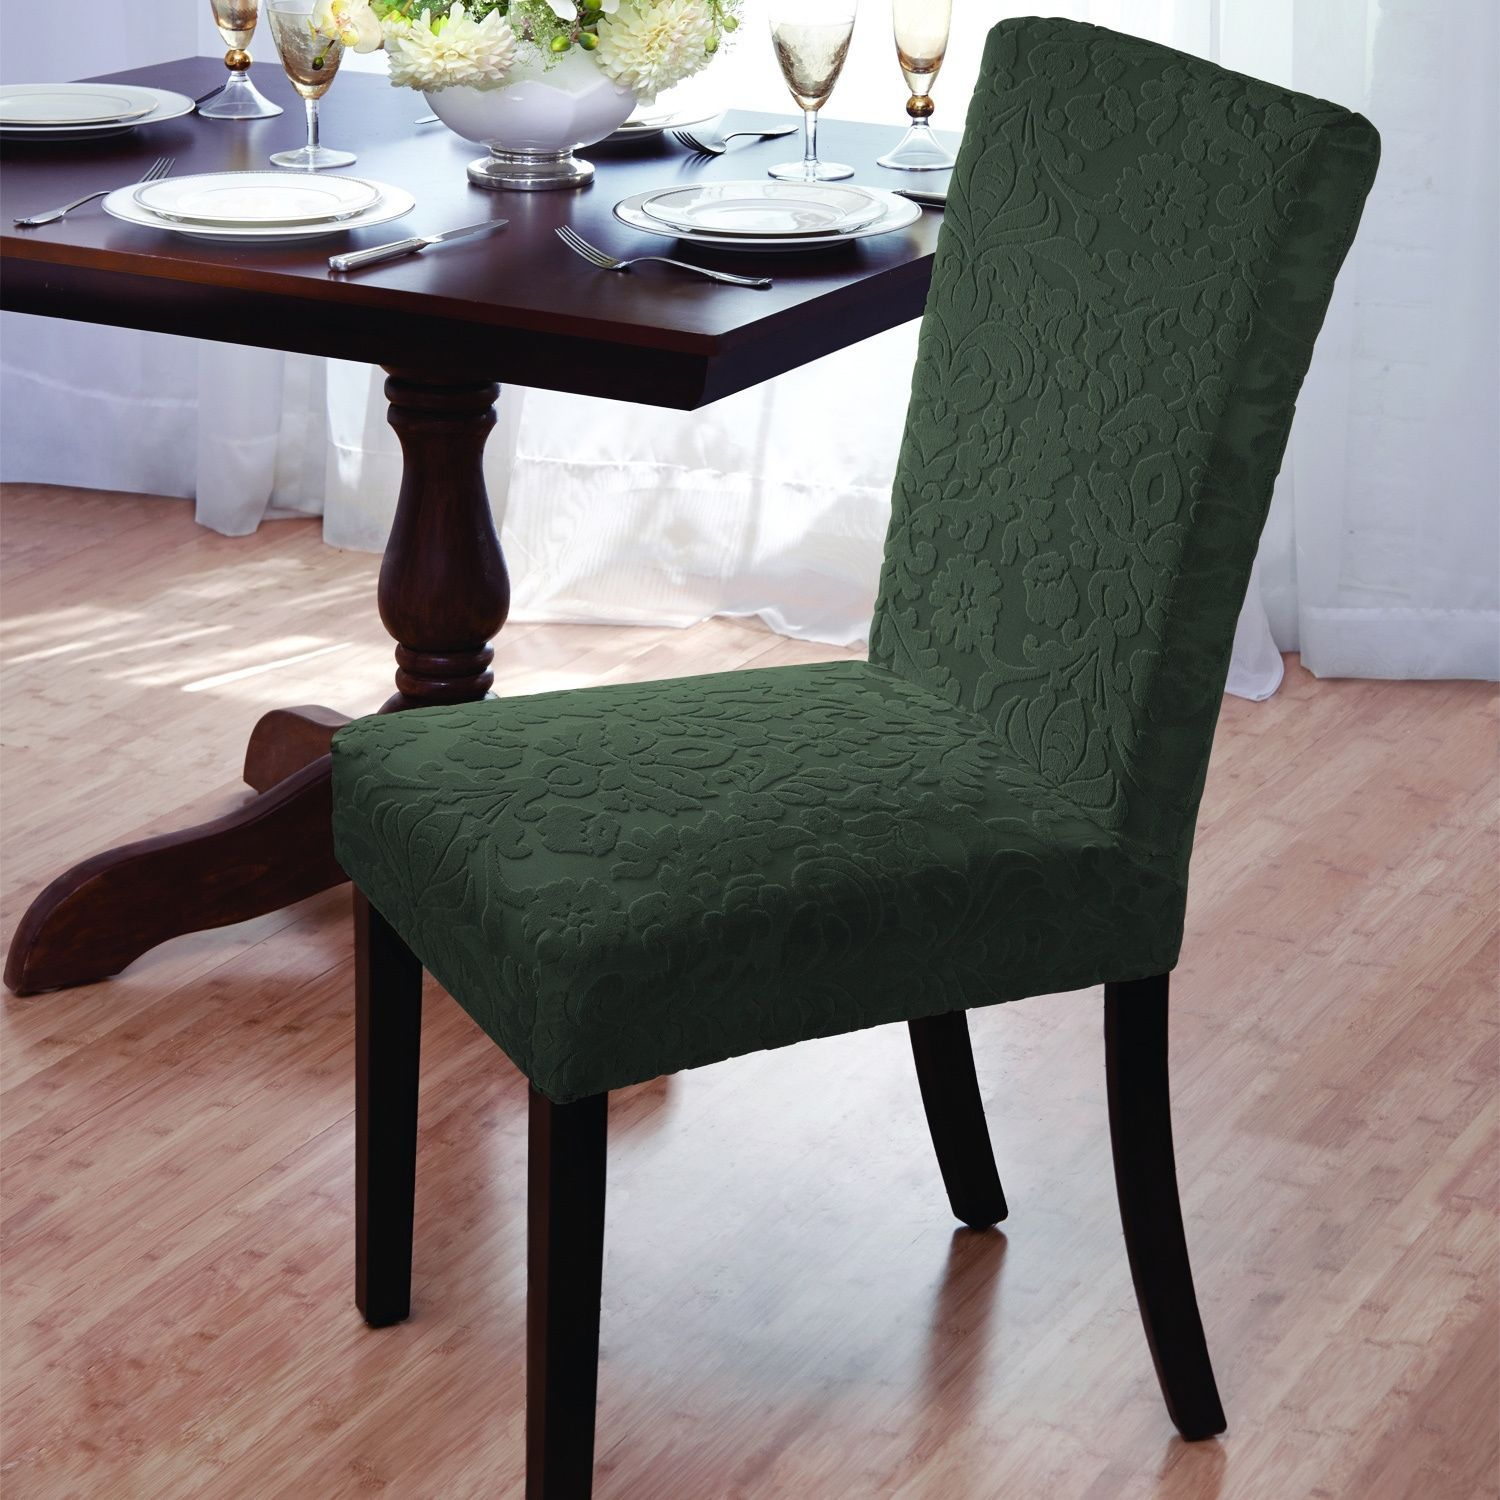 Stretch Dining Room Chair Slipcovers madison velvet damask stretch dining chair slipcovers (beige